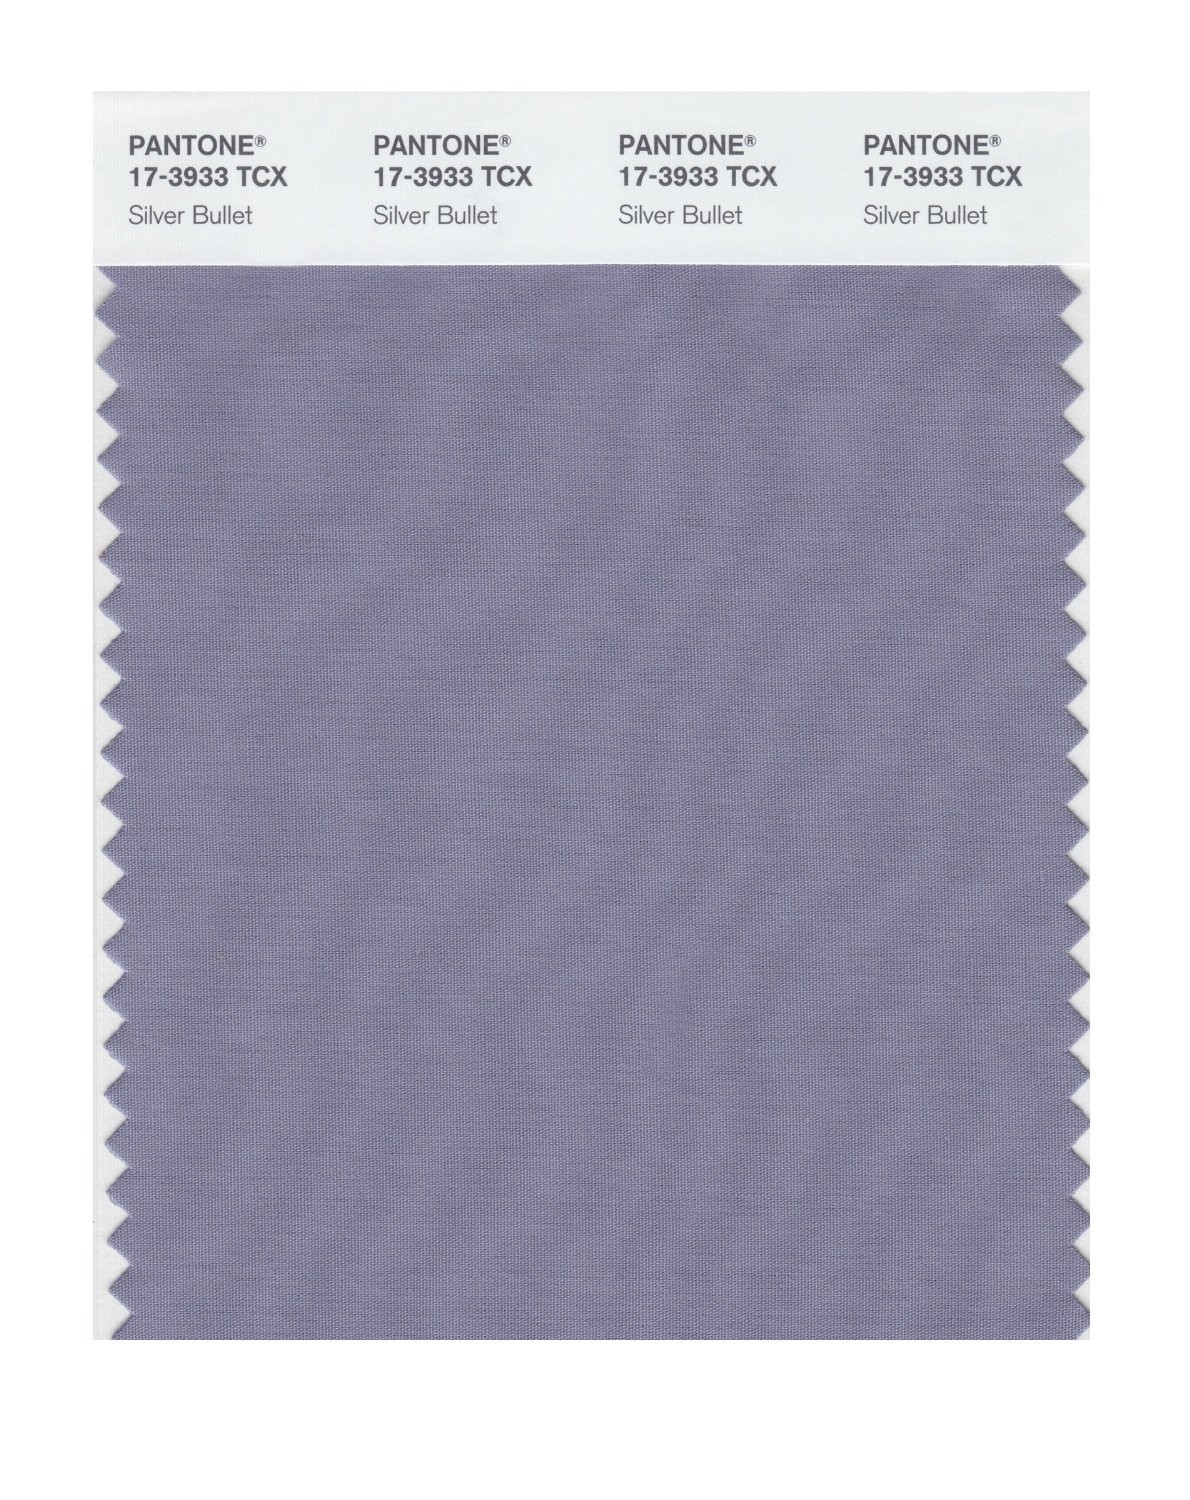 Pantone 17-3933 TCX Swatch Card Silver Bullet